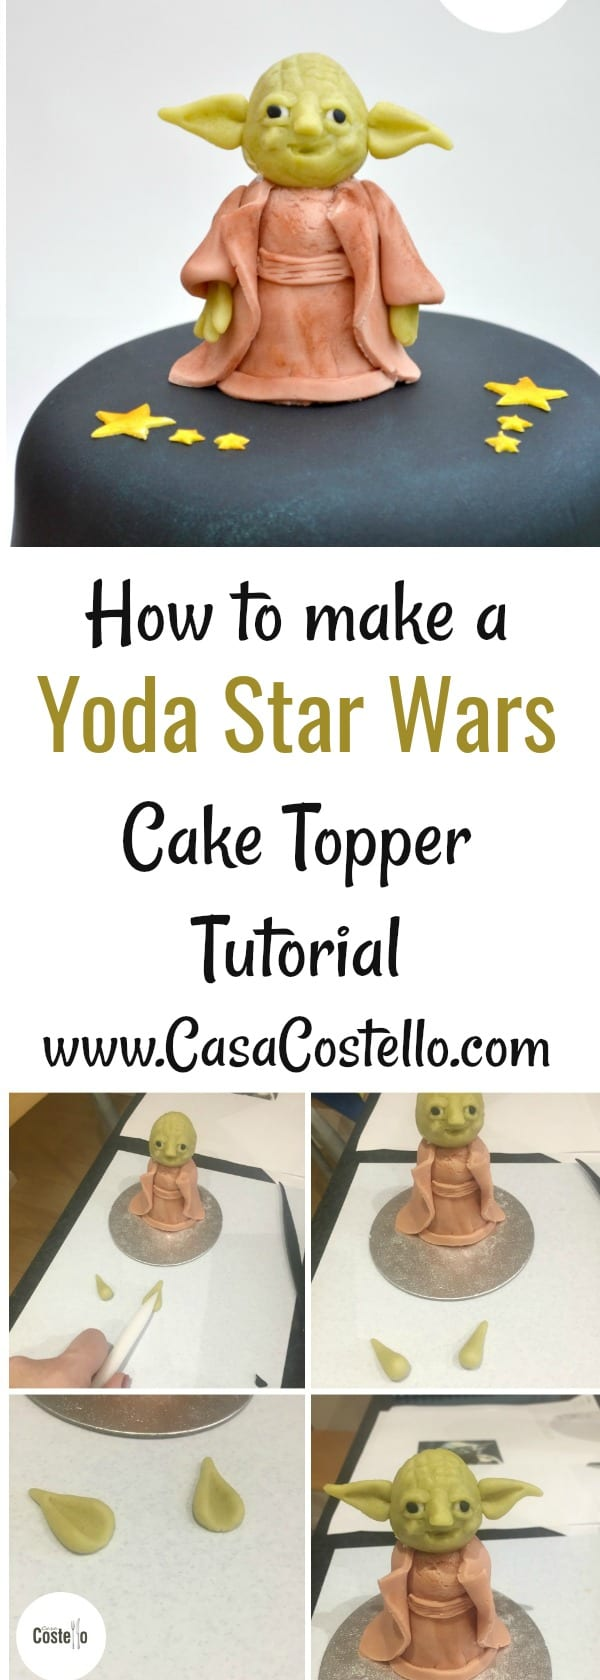 How to make a Yoda Star Wars Cake Topper Tutorial